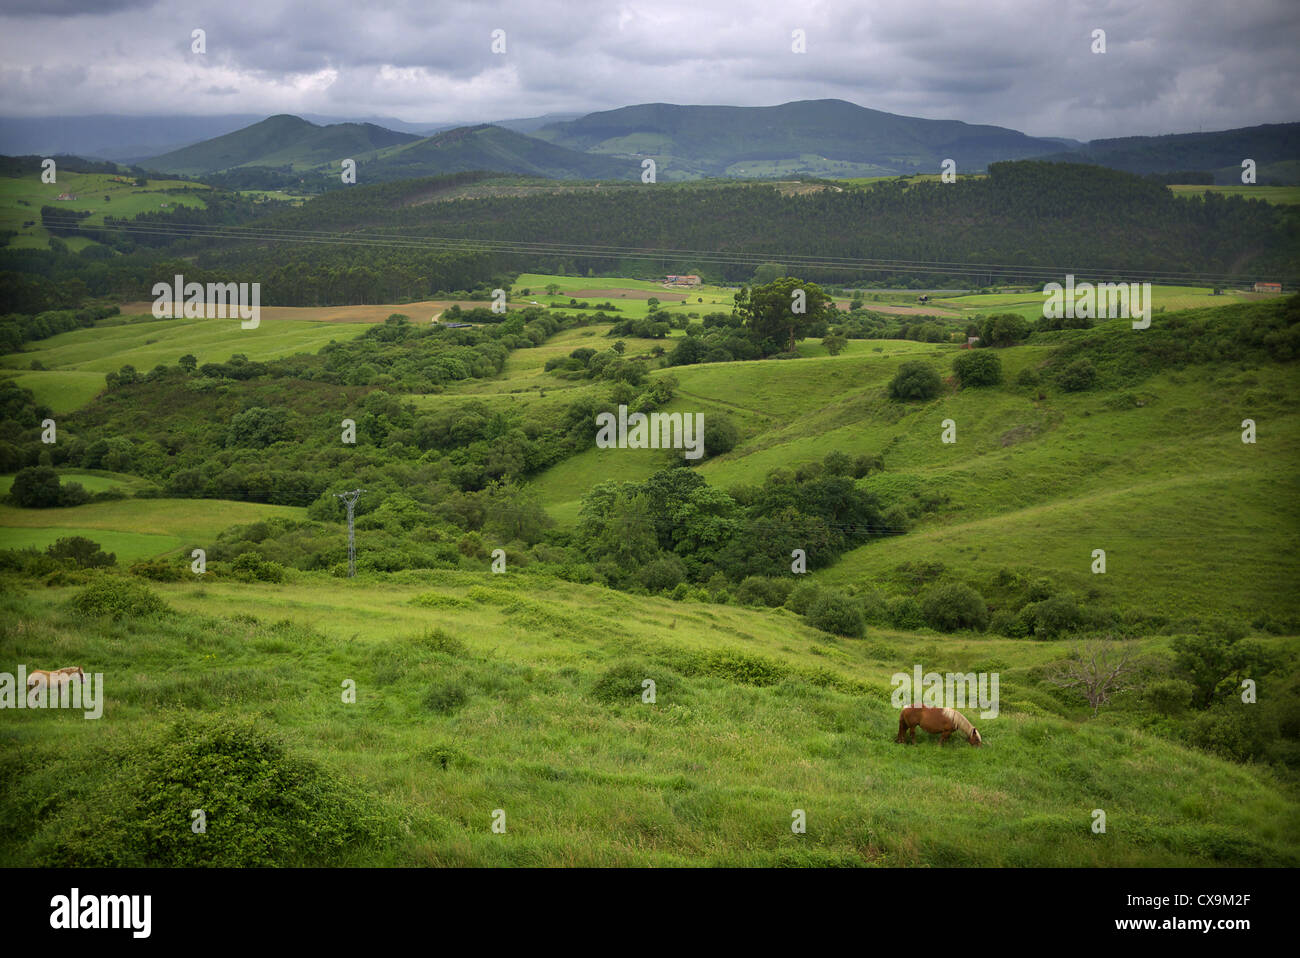 Countryside in the Cantabria region of Spain. - Stock Image